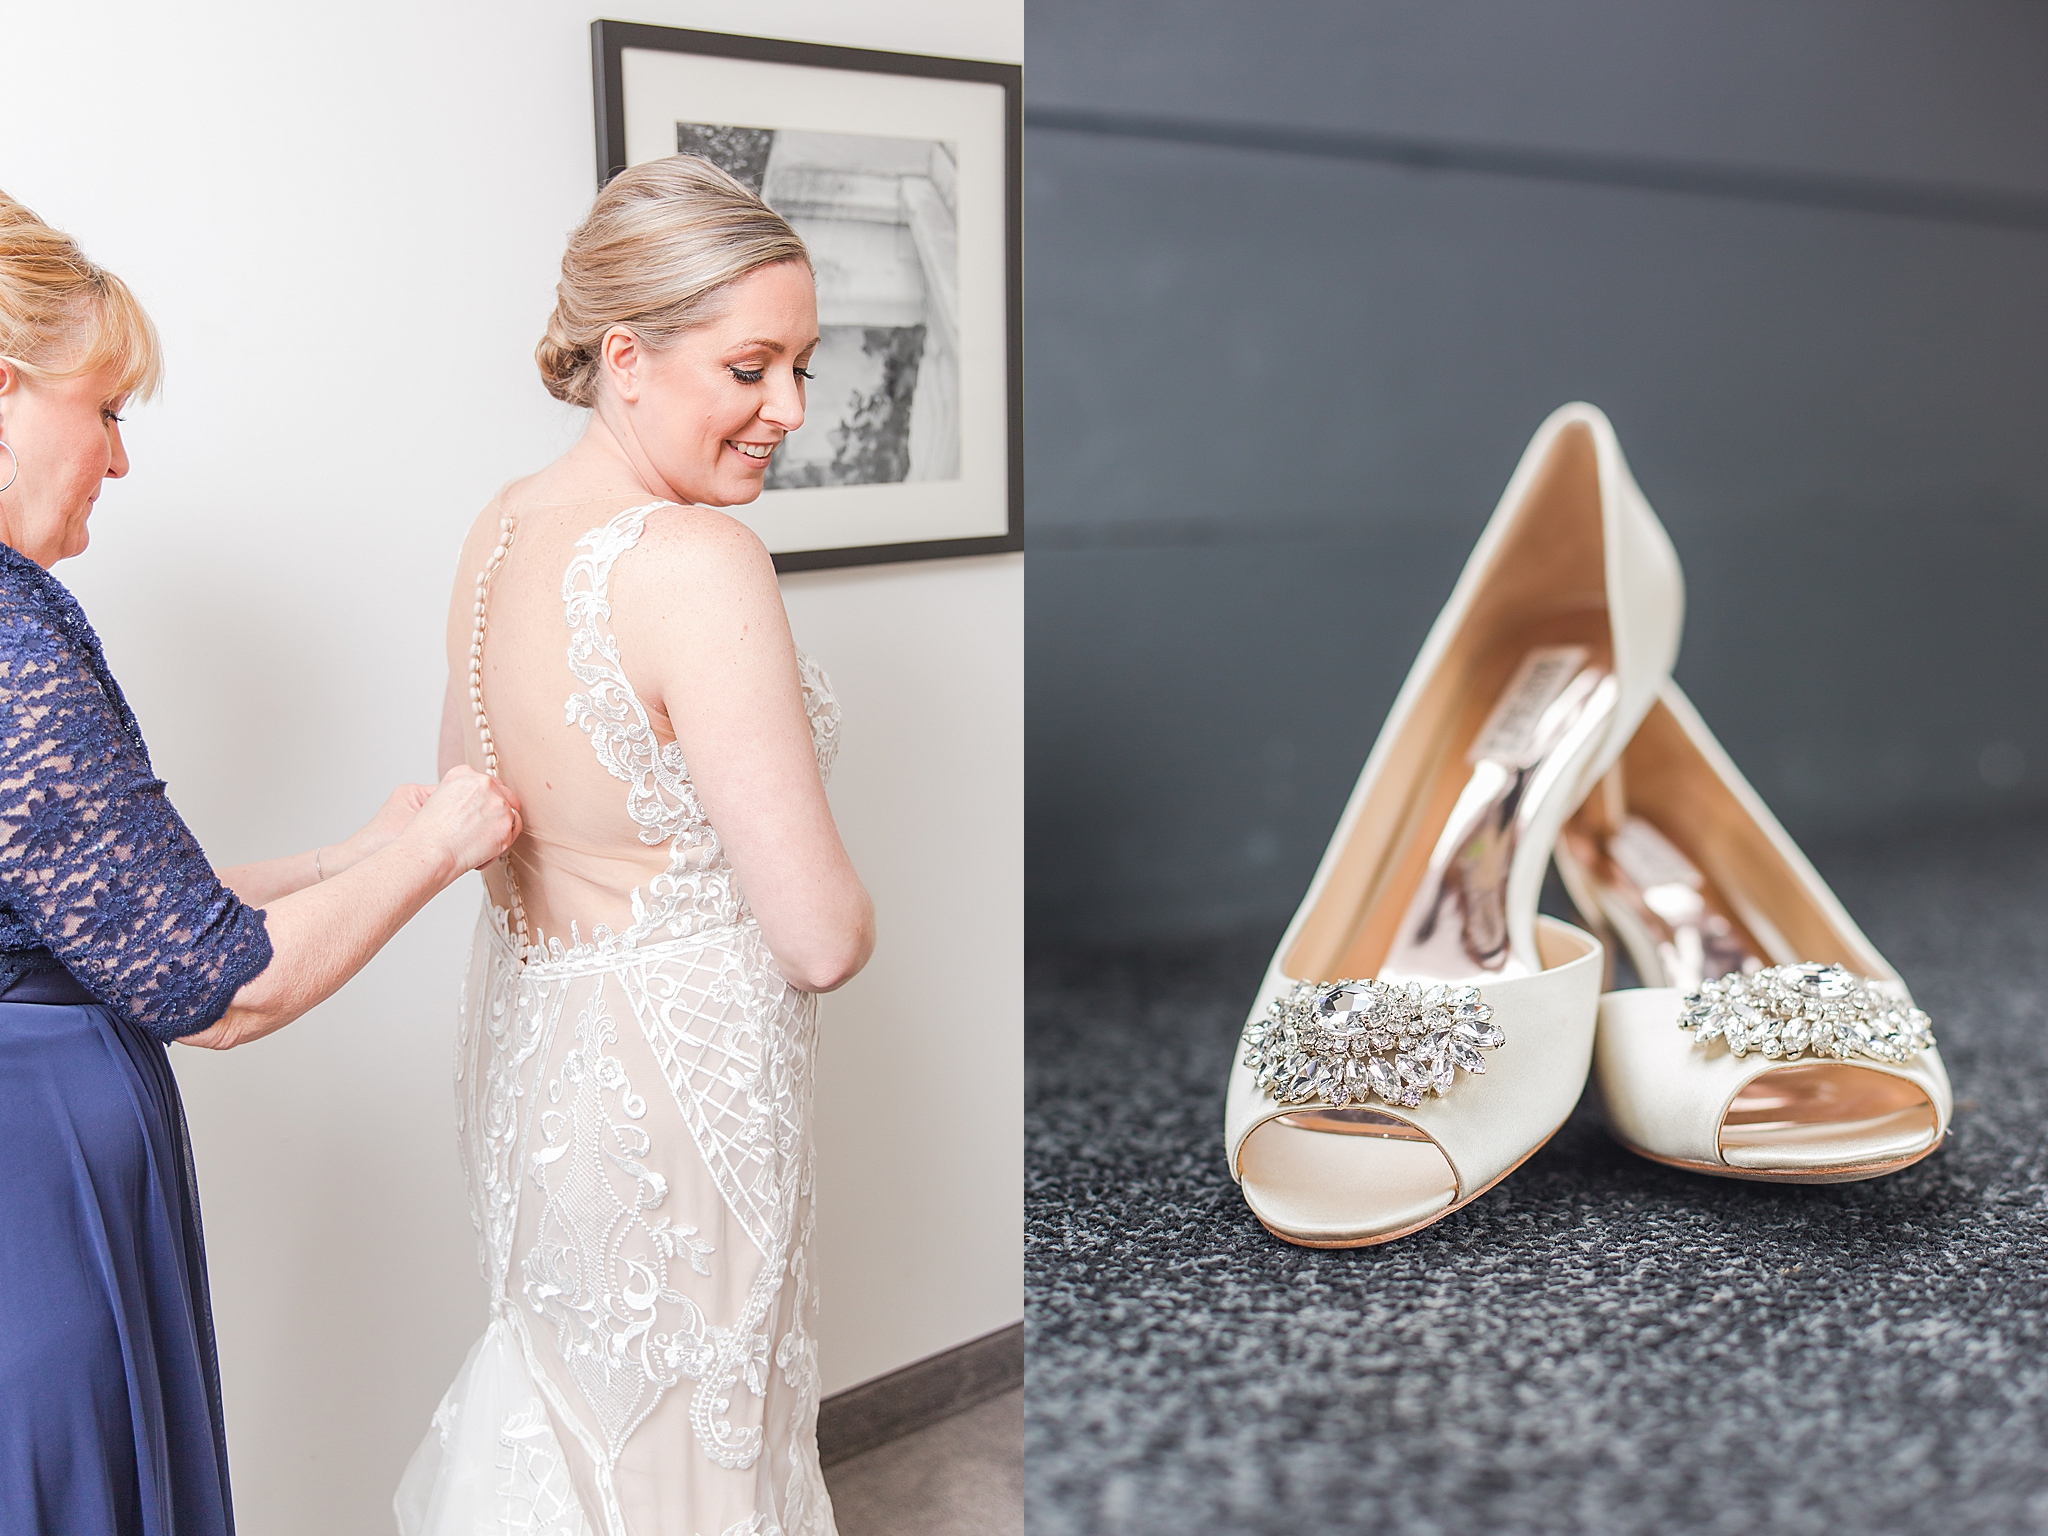 modern-romantic-wedding-photography-at-webers-in-ann-arbor-michigan-by-courtney-carolyn-photography_0007.jpg